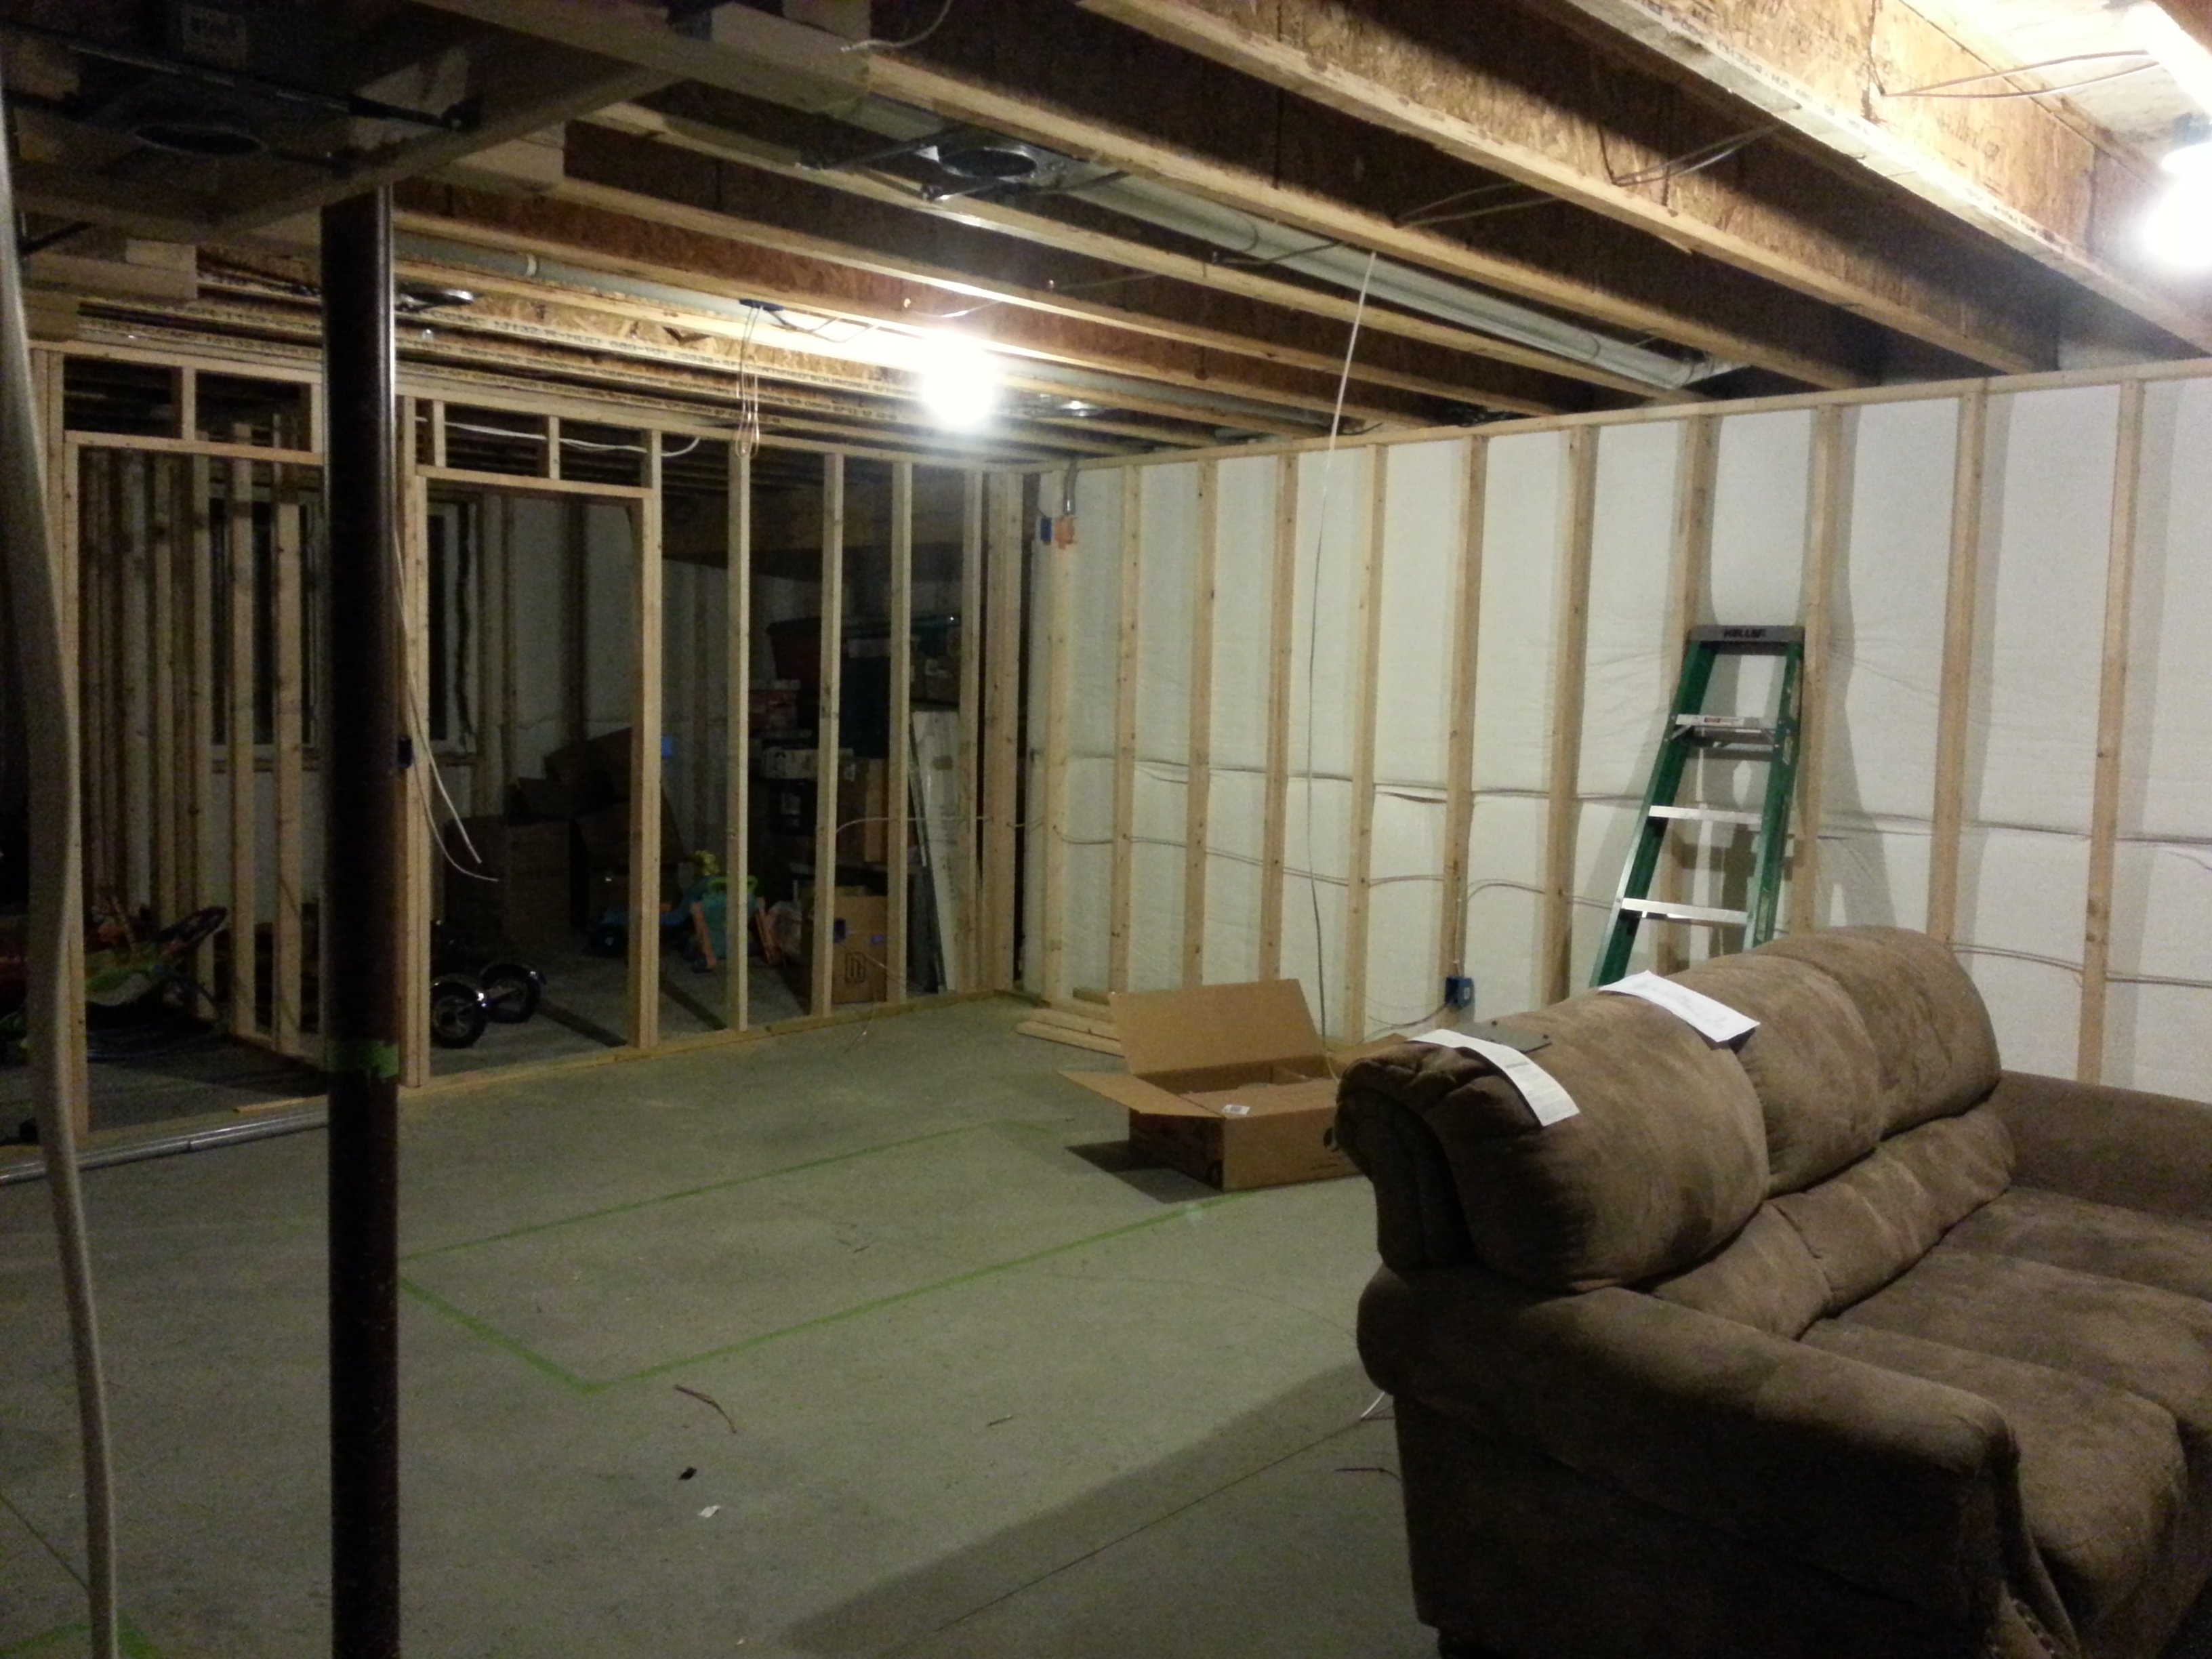 Installing New Cat5e Cat6 In Basement Avs Forum Home Theater Wiring Unfinished Electrical Diy Chatroom Av Rack On The Far Right Under Stairs Main Tv Will Be Wall Left